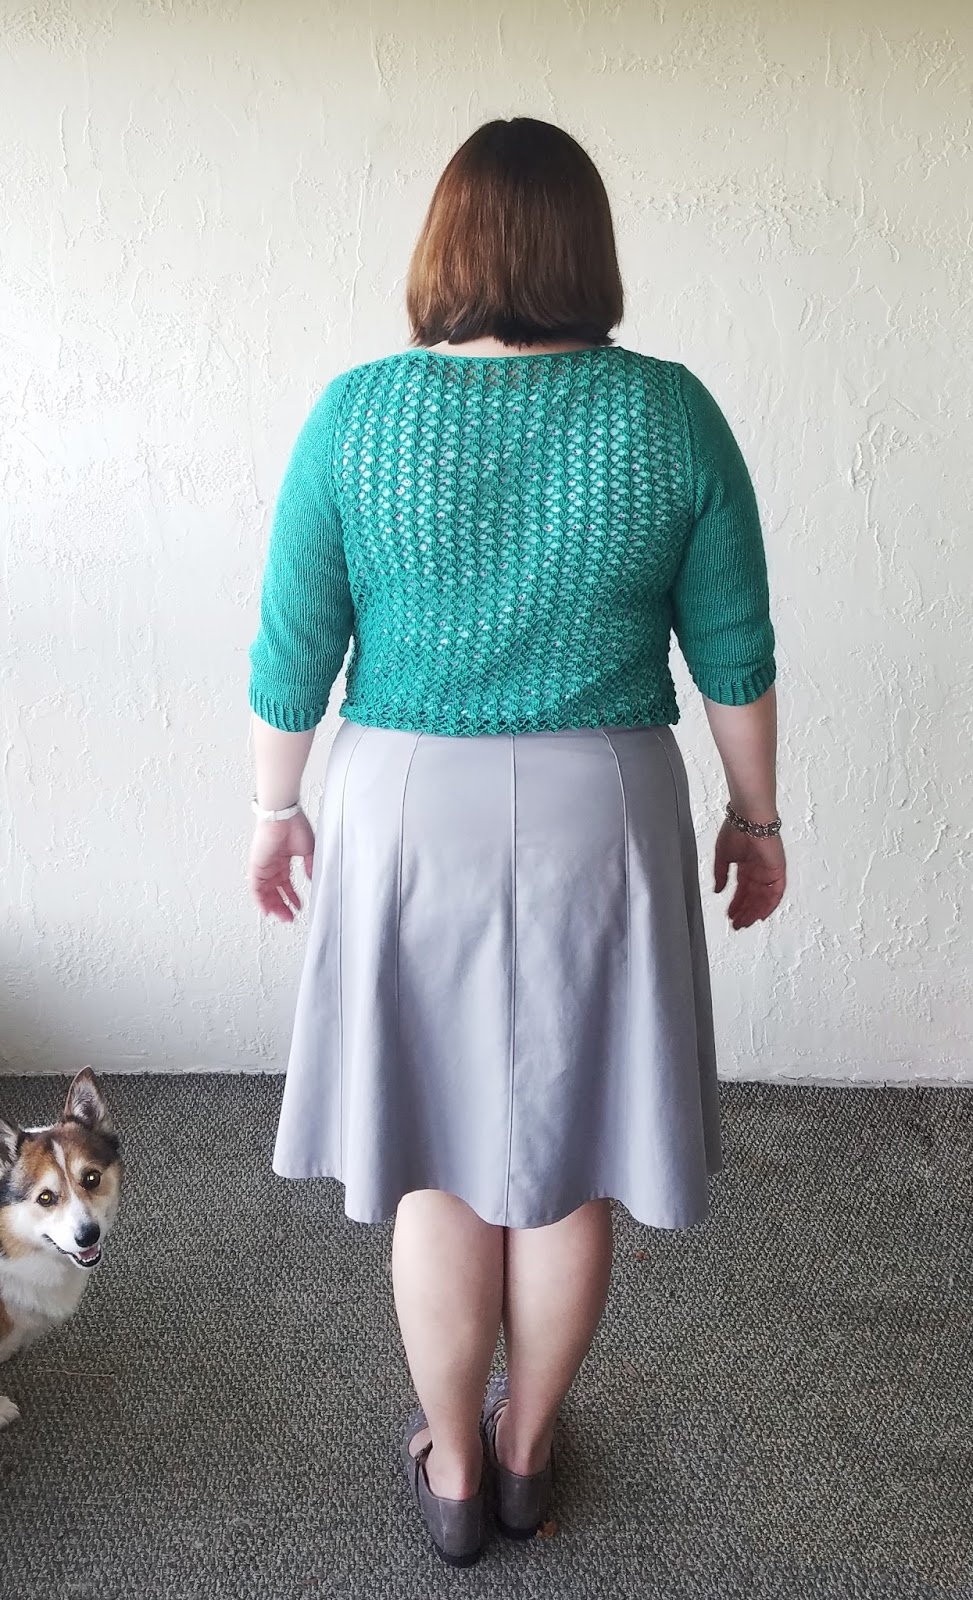 58a9b158440 Gordo bomb! lol my dog really wanted to be a part of this whole picture  taking business. The back of the sweater has the same all over lace pattern  as the ...